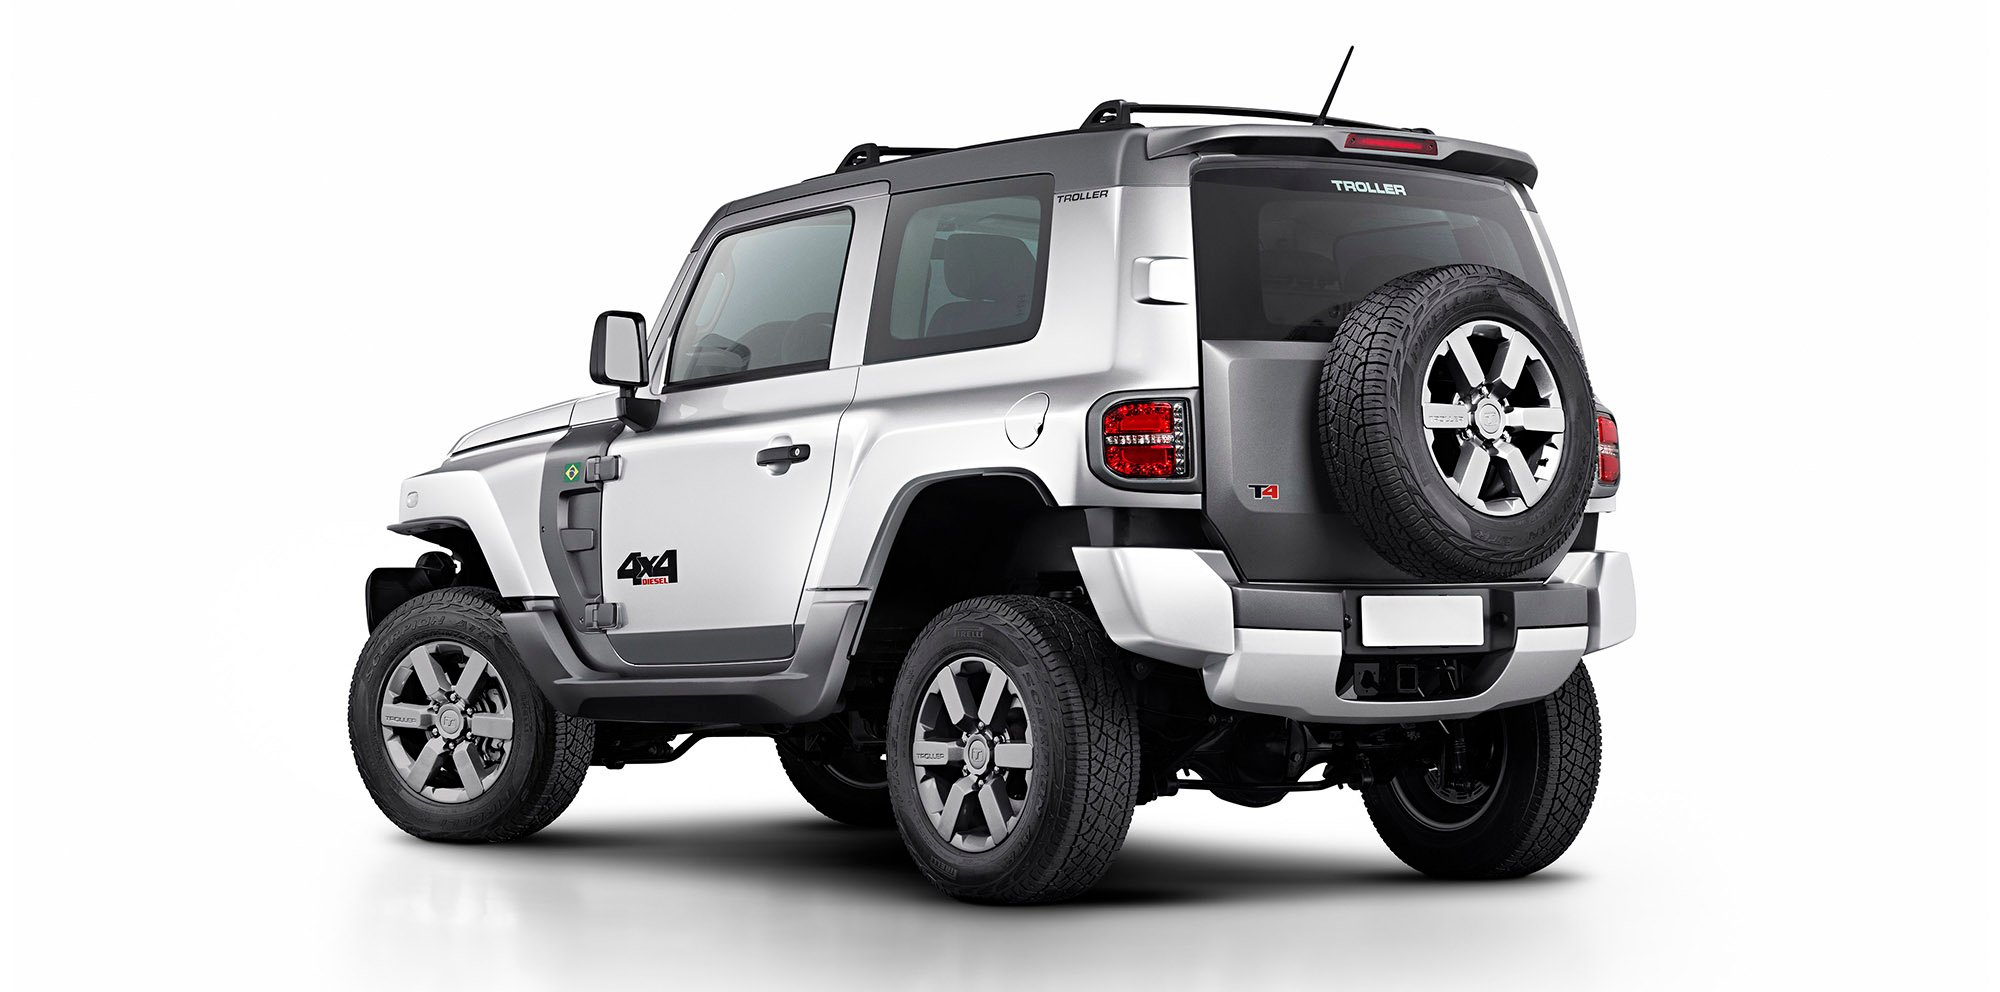 Ford T4 Troller >> New Ford Troller T4 is a Brazilian-born Jeep Wrangler-style SUV - photos | CarAdvice